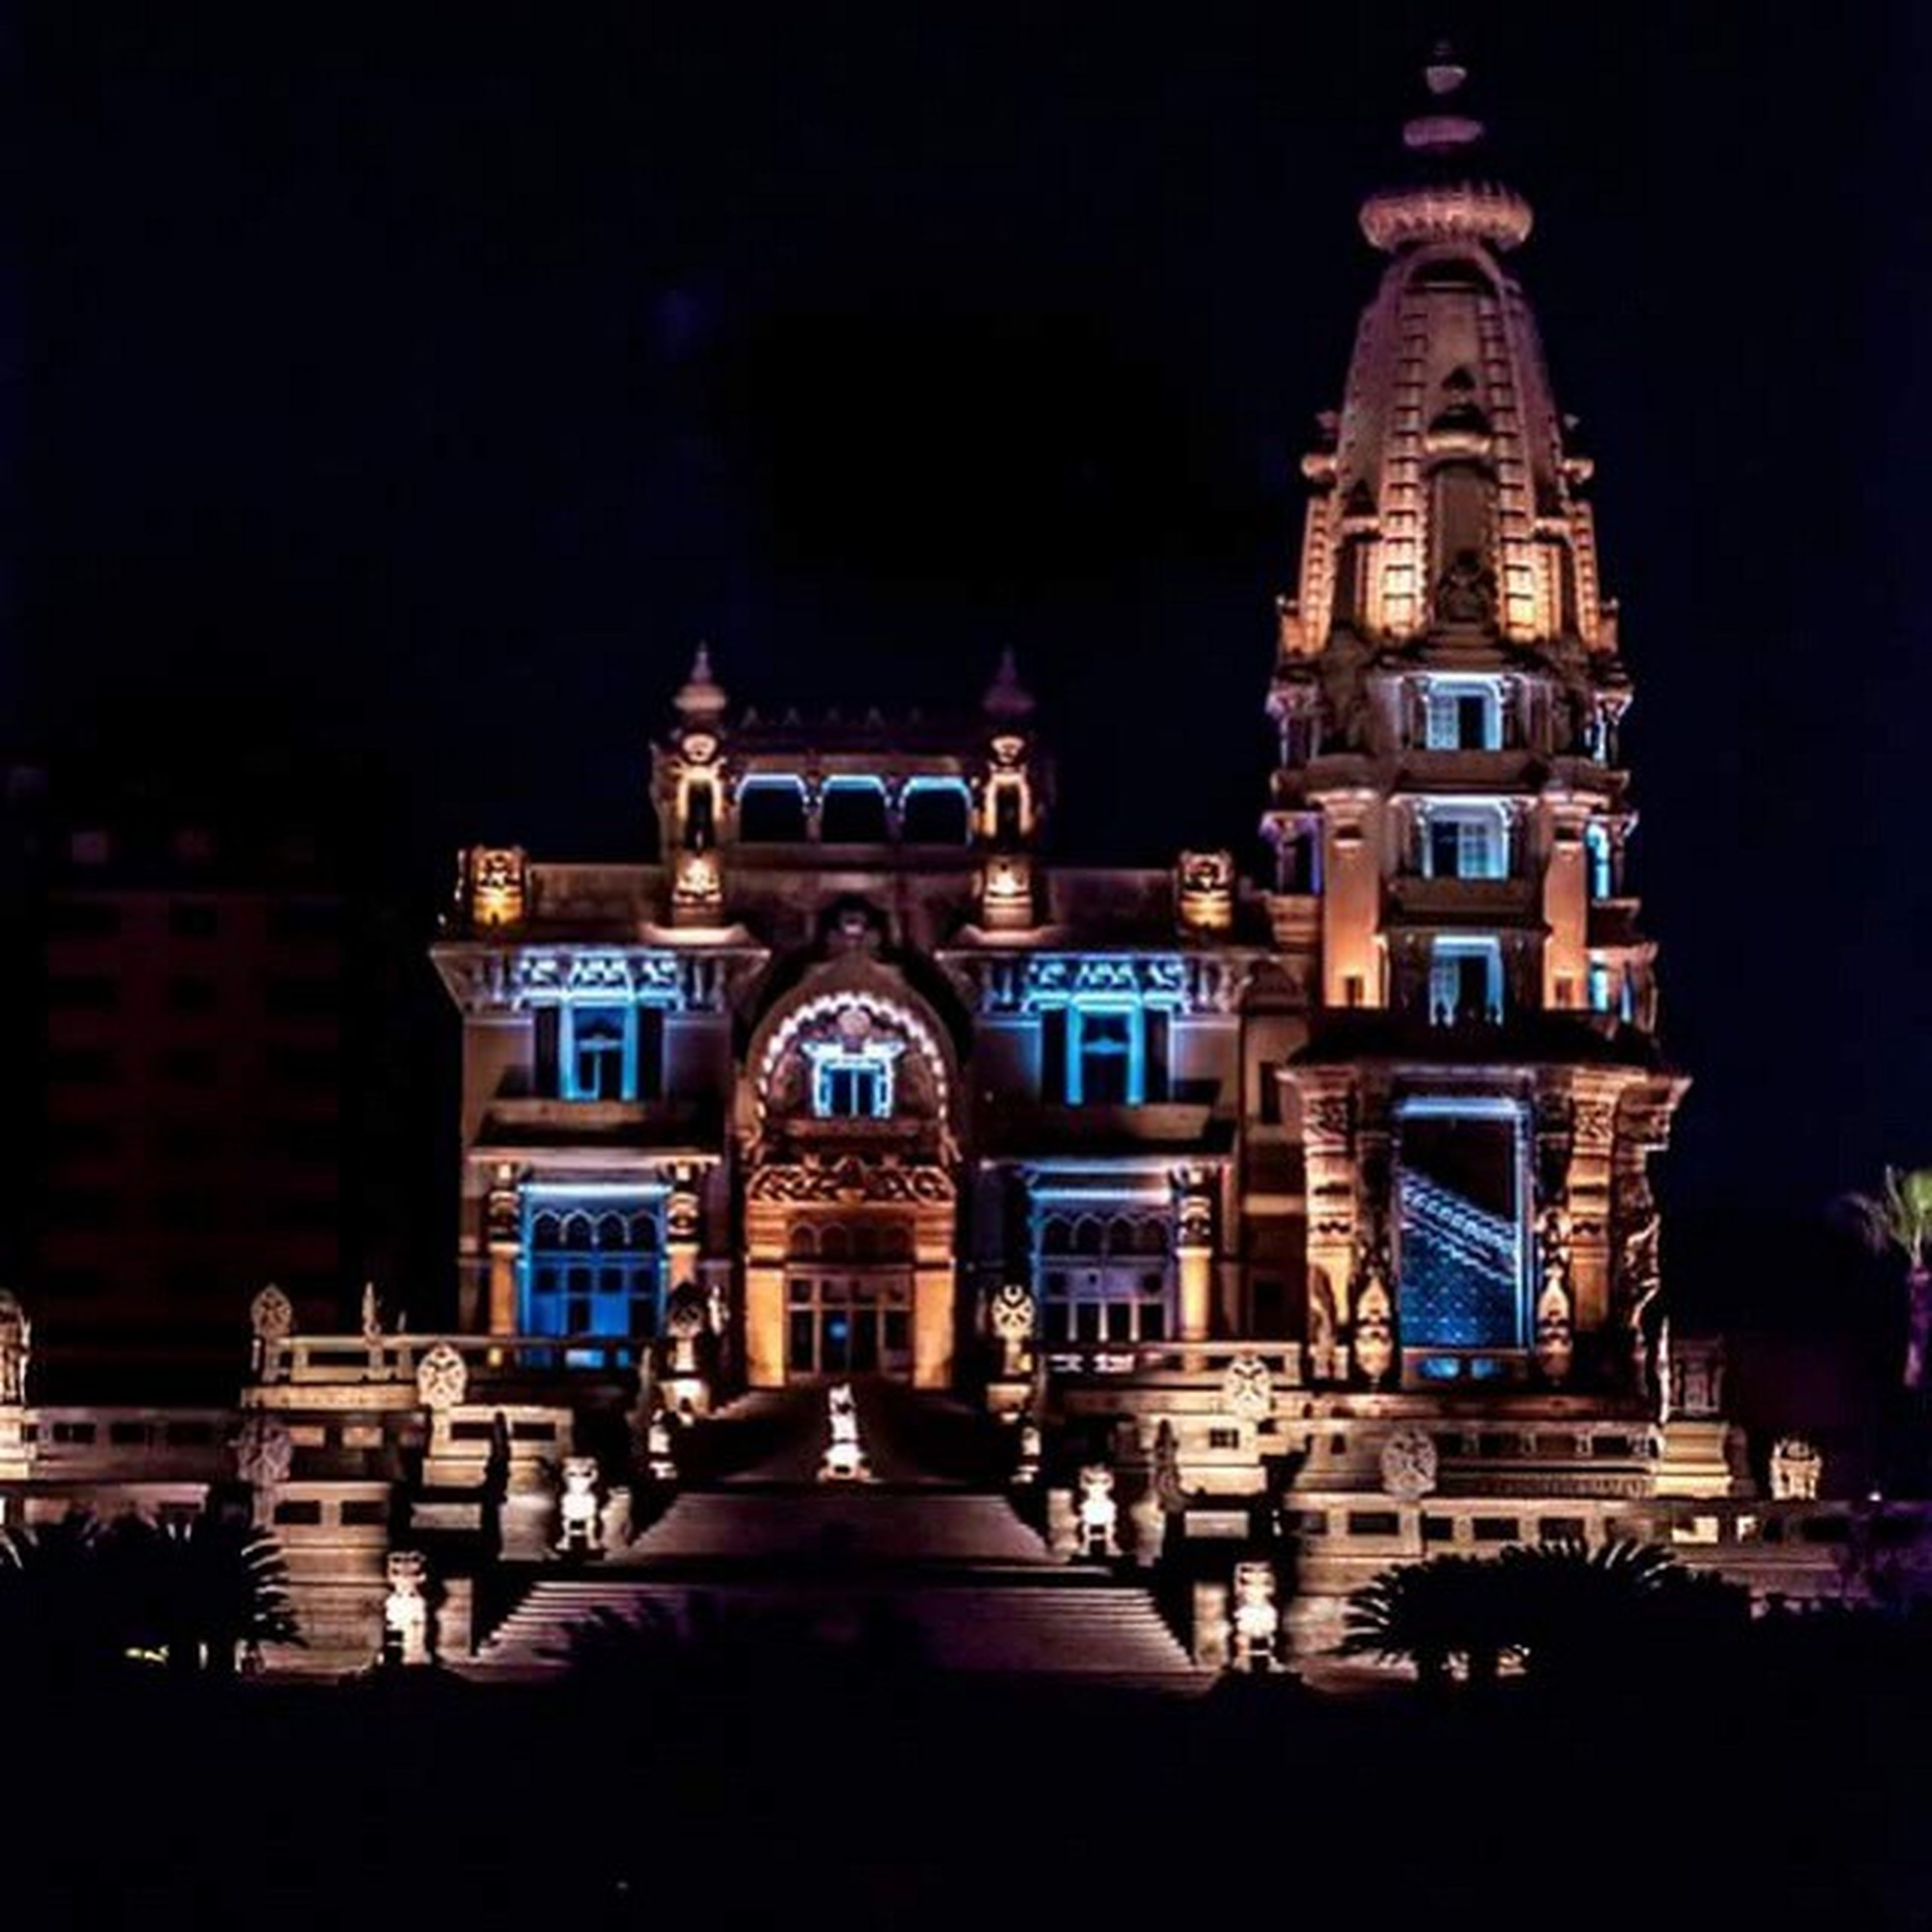 building exterior, architecture, religion, place of worship, built structure, spirituality, church, night, cathedral, dome, illuminated, facade, travel destinations, famous place, city, sky, history, low angle view